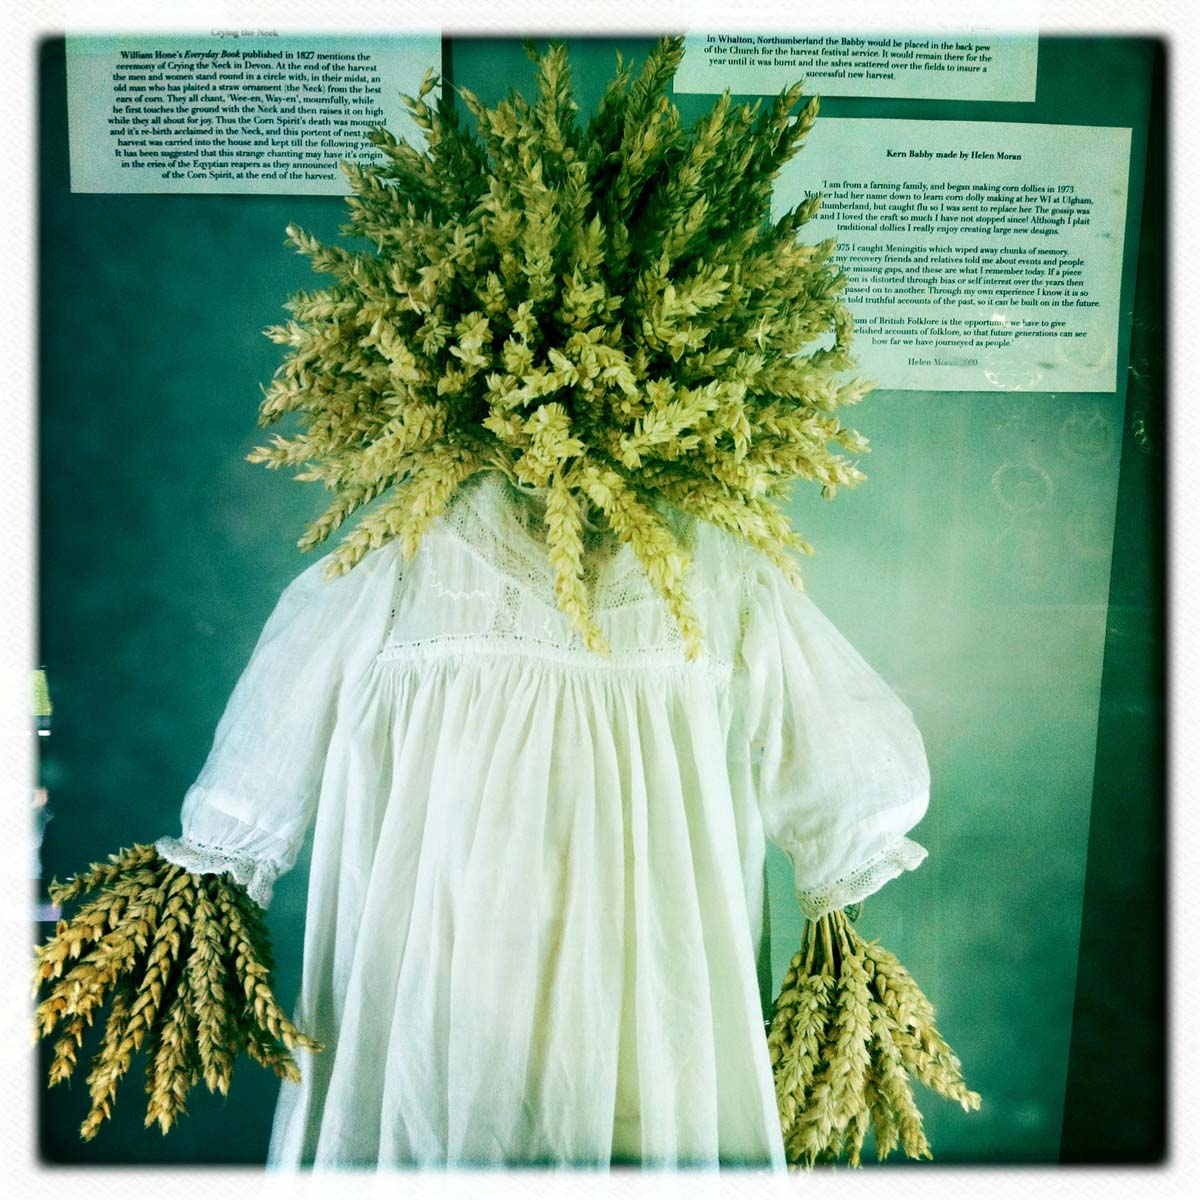 a photo of a corn dolly in a country smock